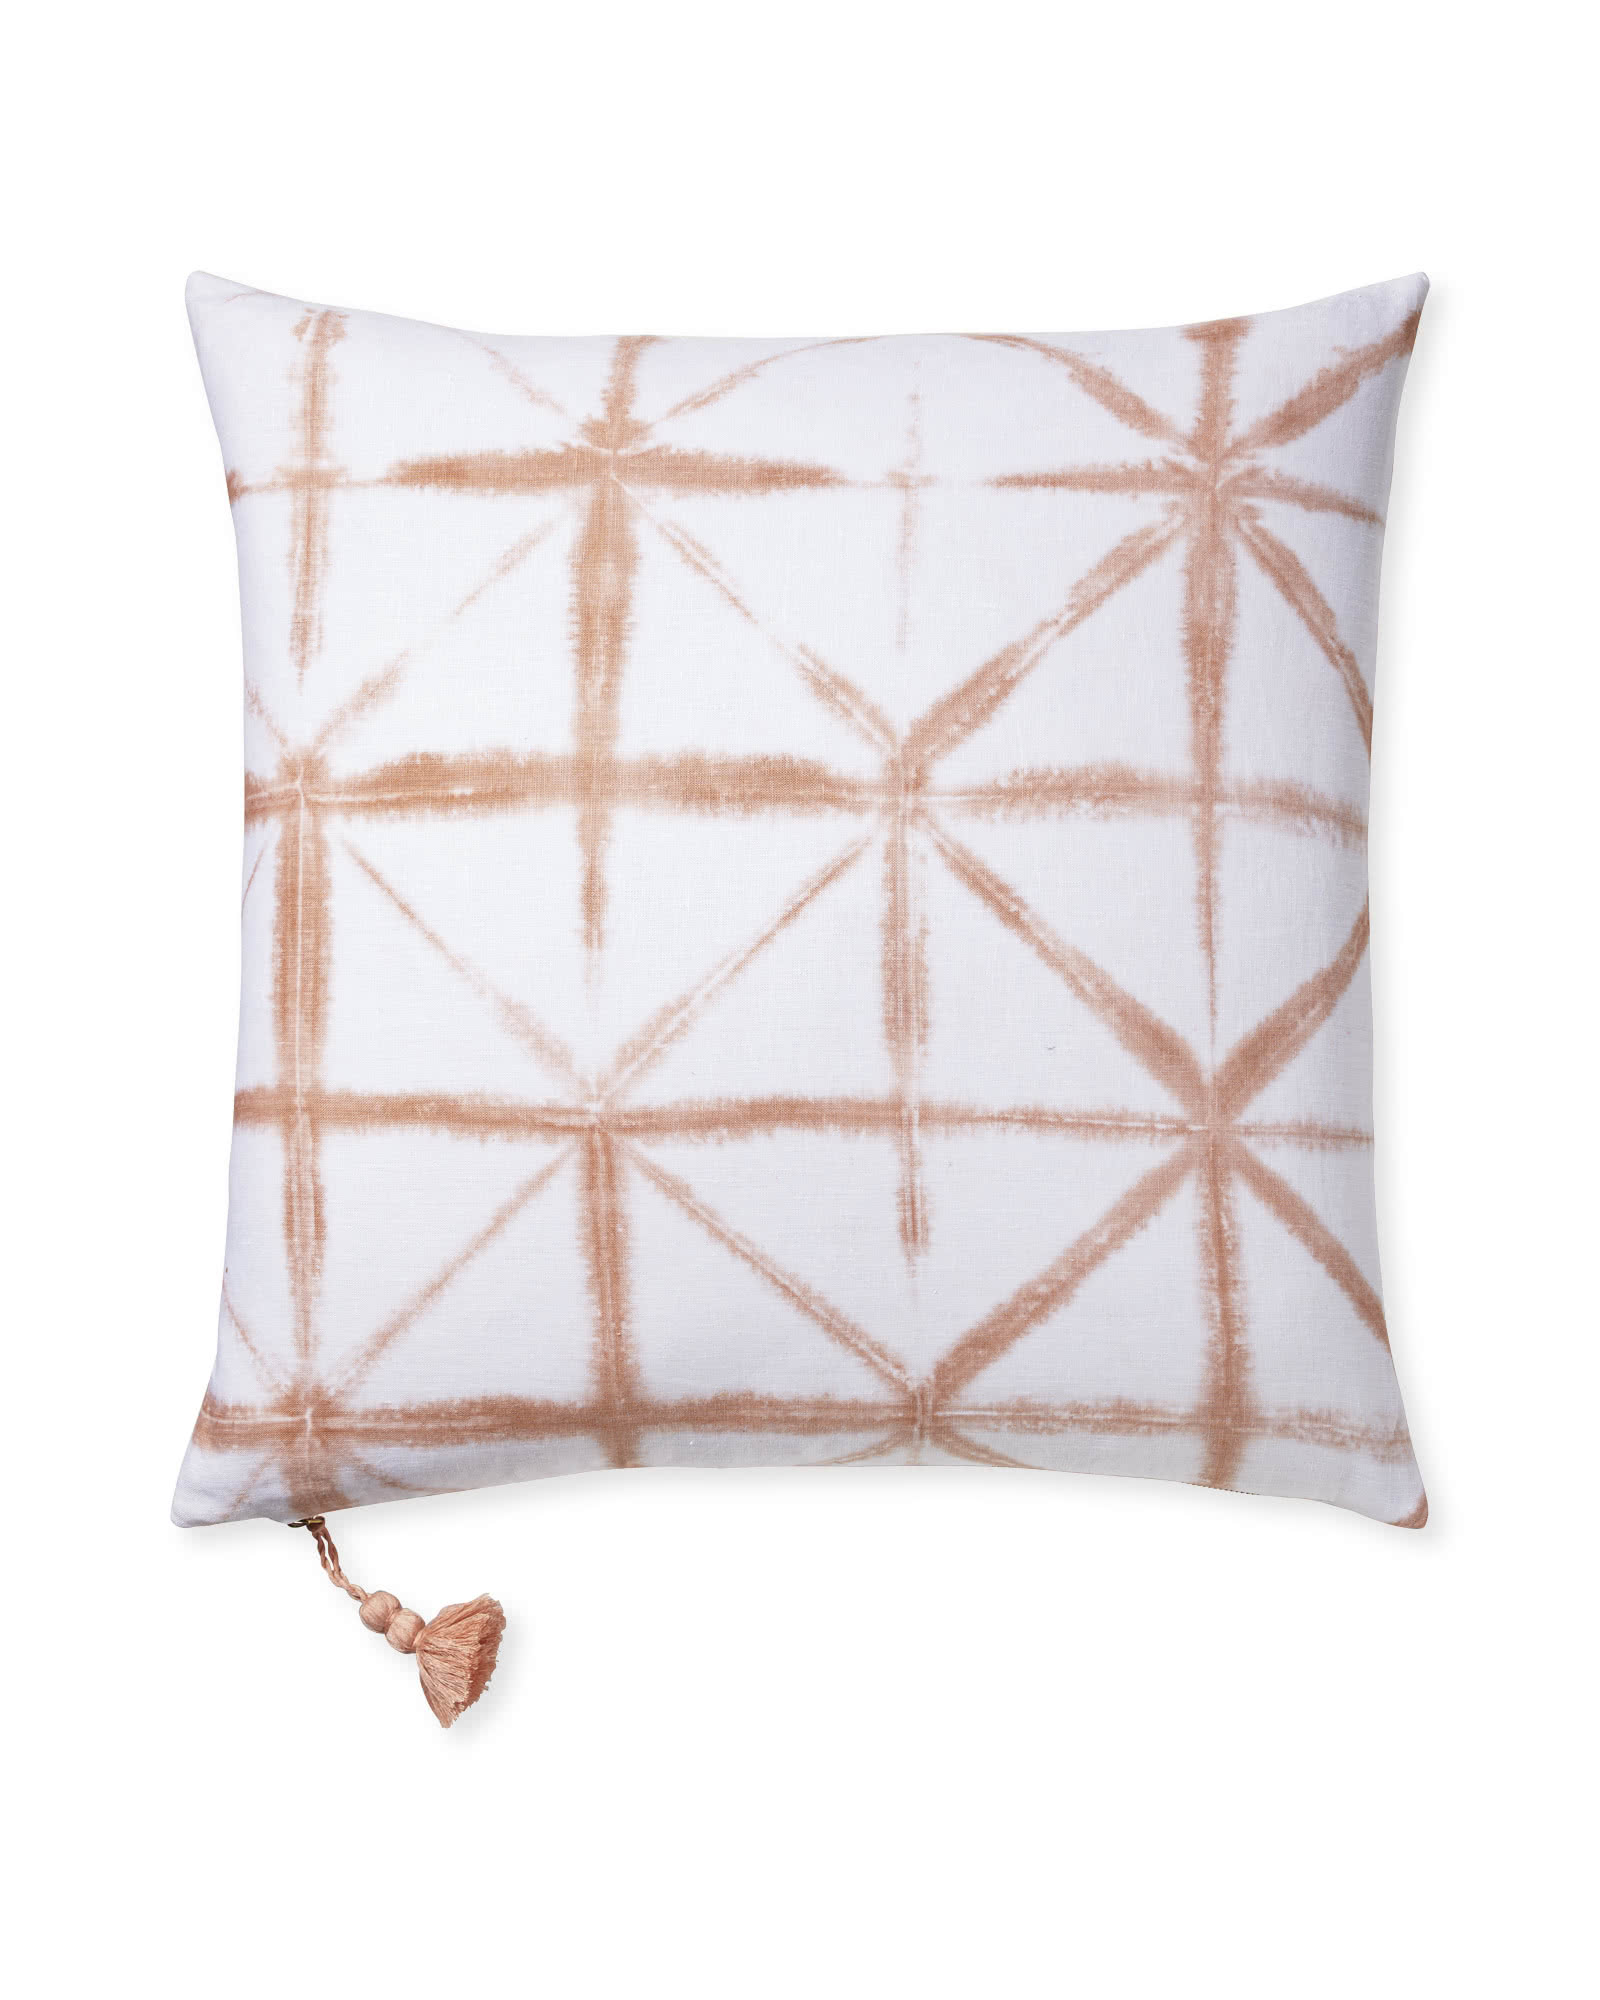 Starburst Pillow Cover, Pink Sand